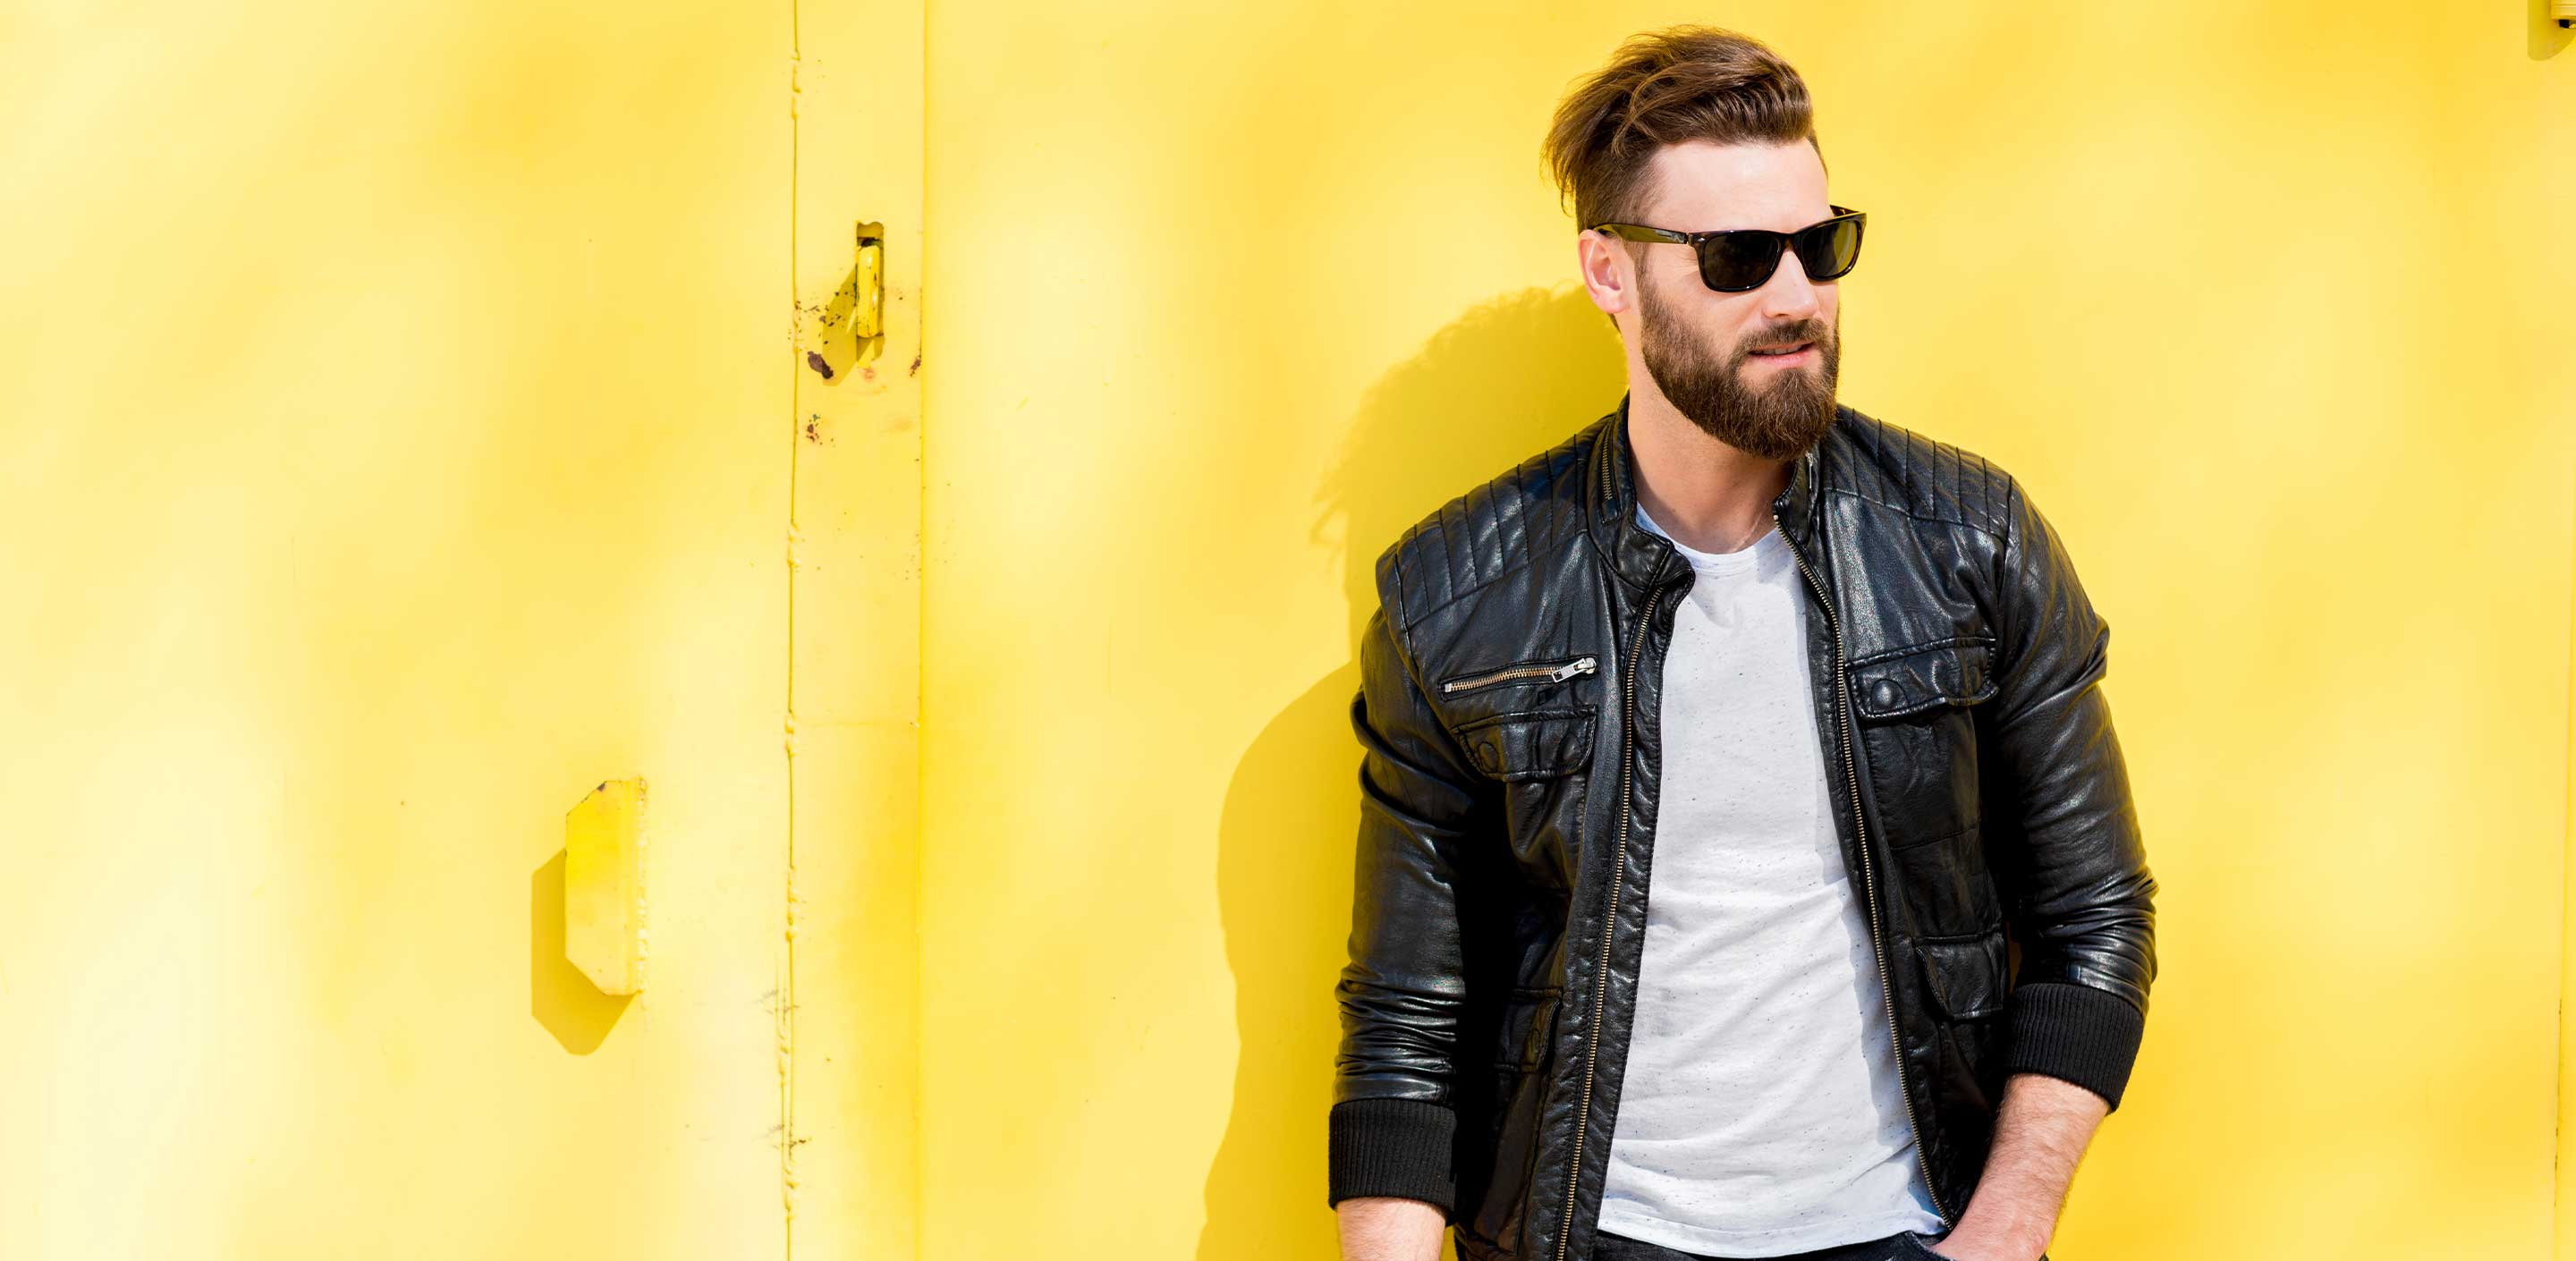 Shine Bright with Classy Leather Bomber Jackets